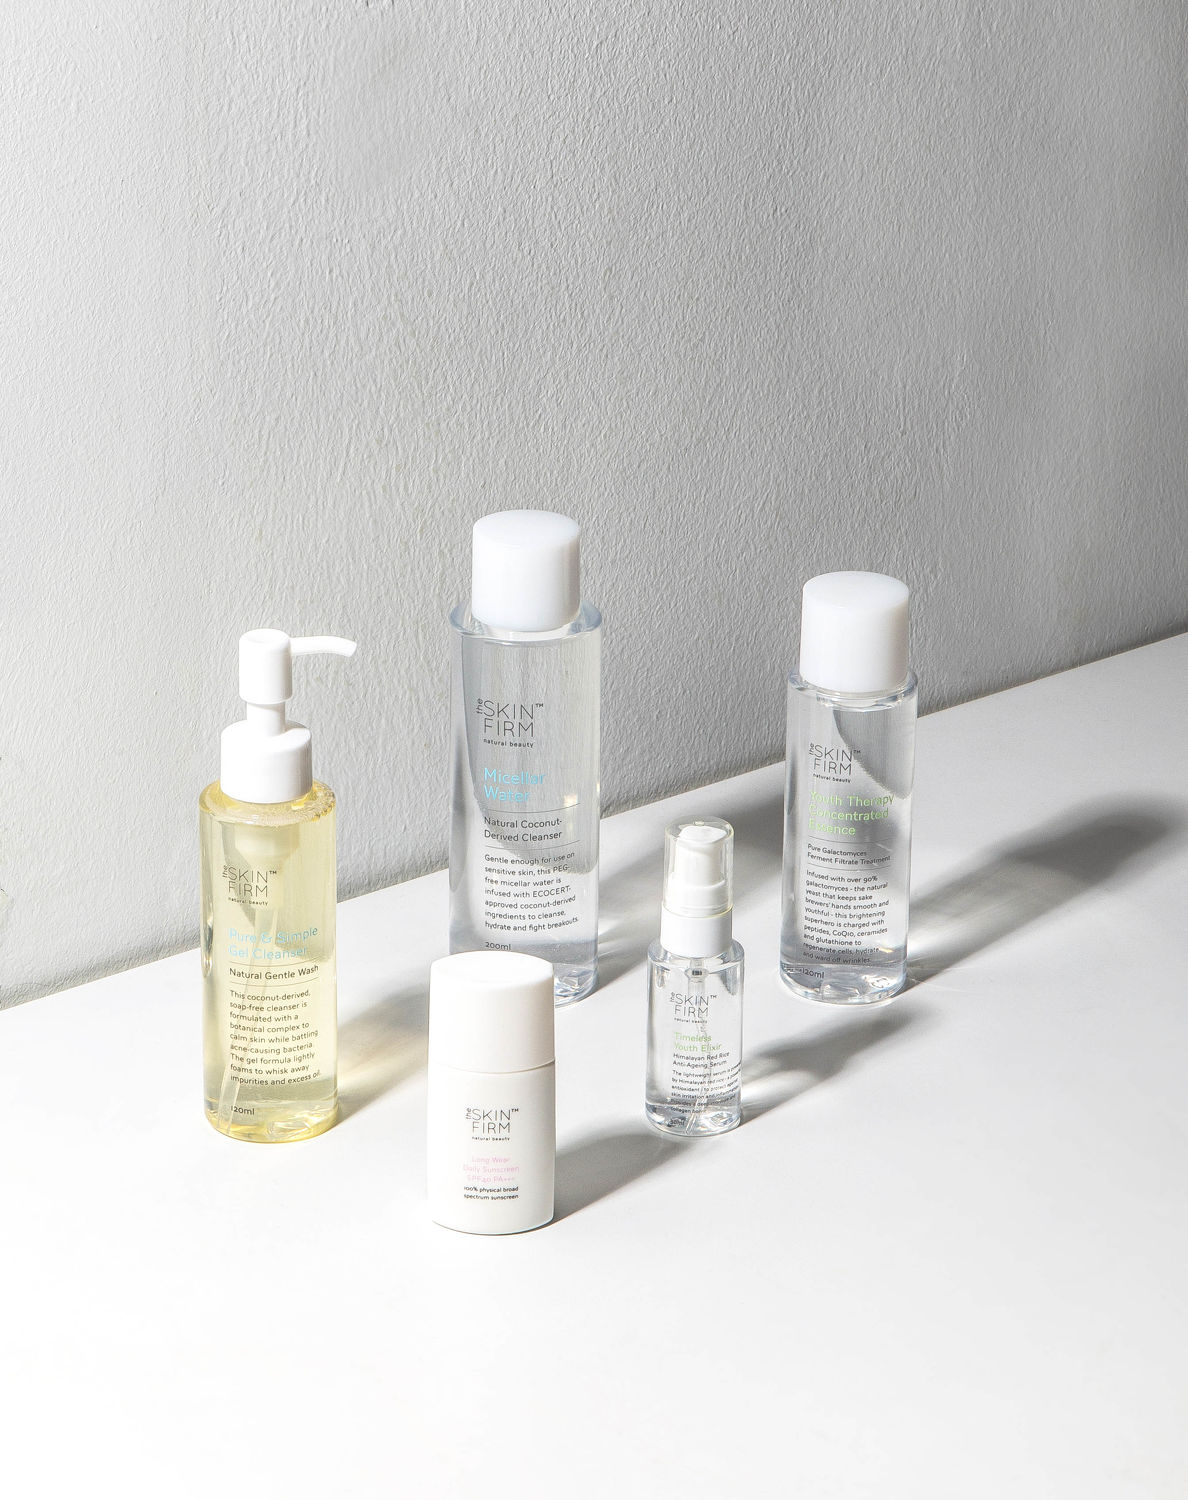 The Skin Firm - THE EDGE SINGAPORE